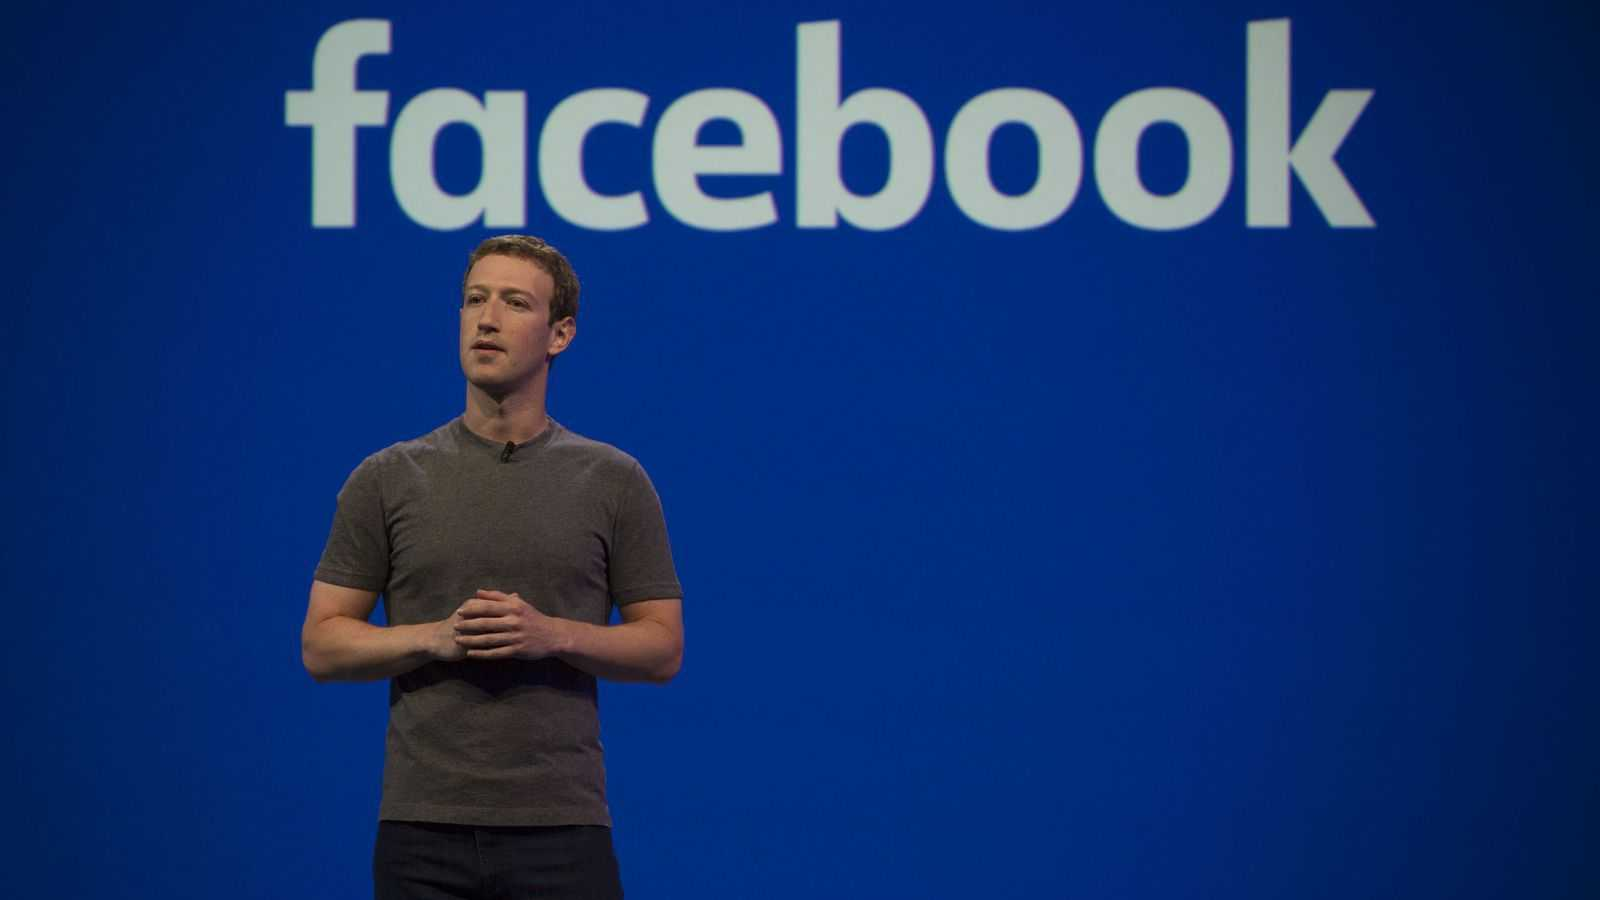 FTC is investigating Facebook over privacy practices